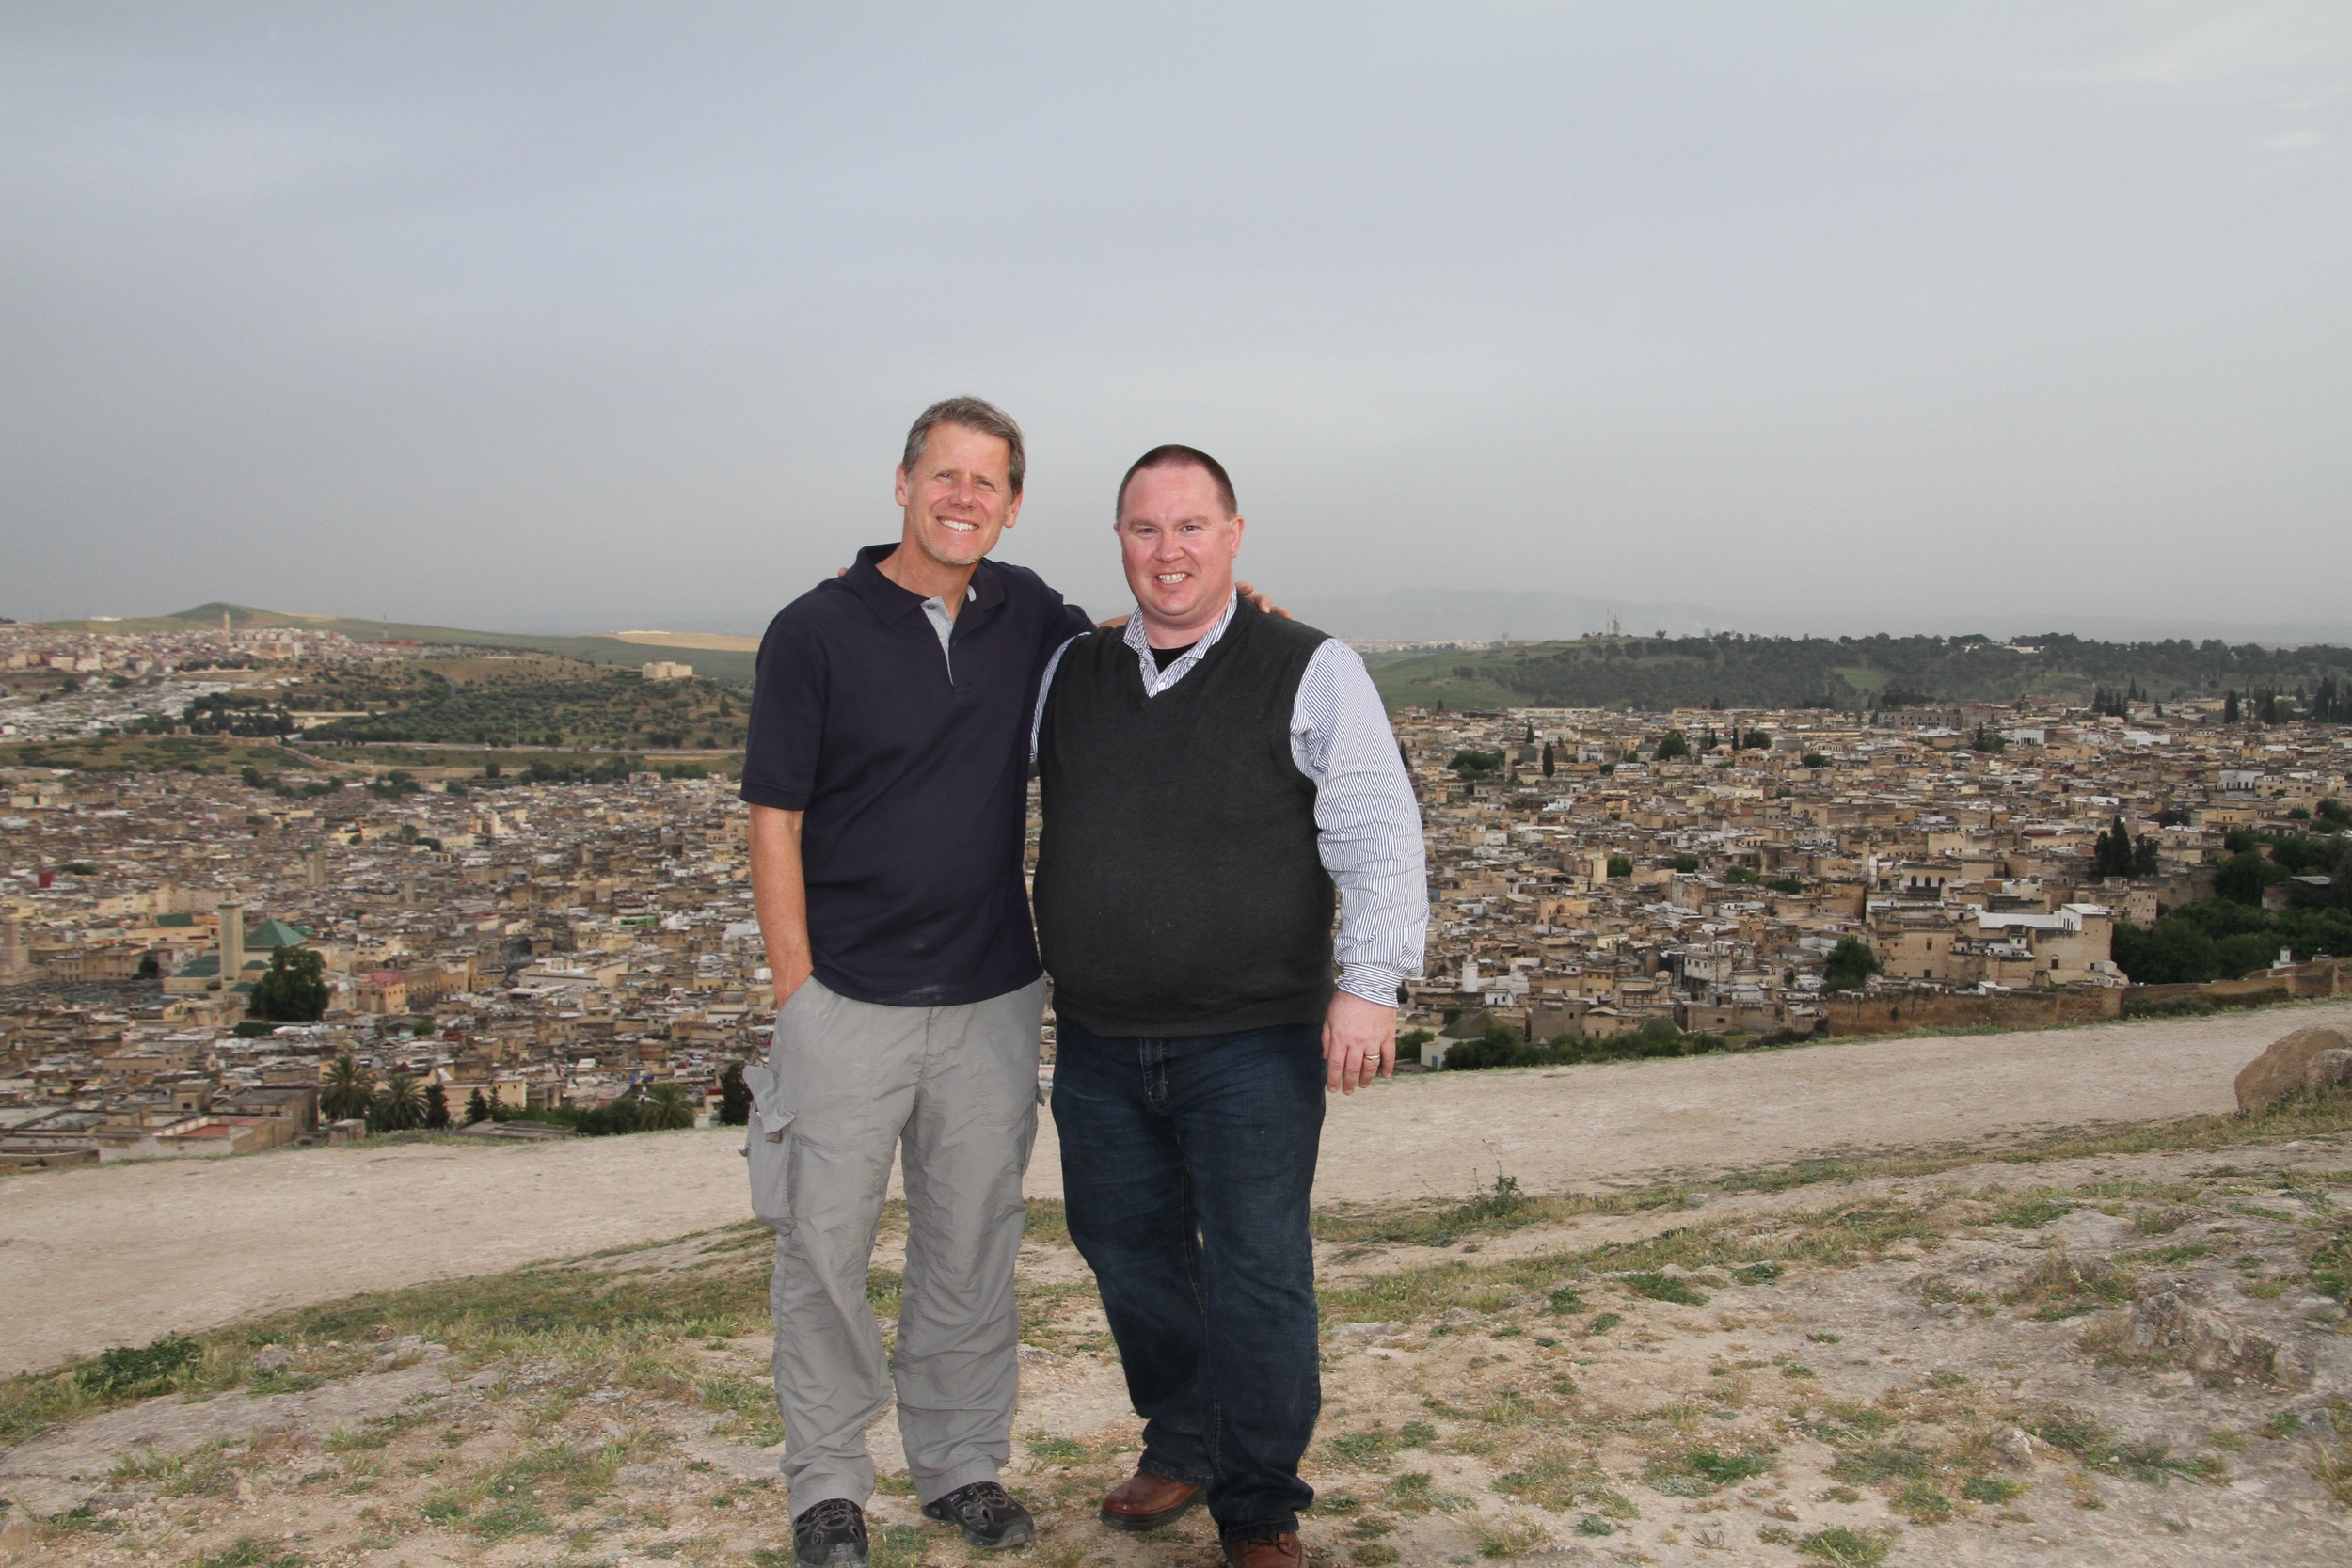 James Smith & Greg Plett - Fes, Morocco